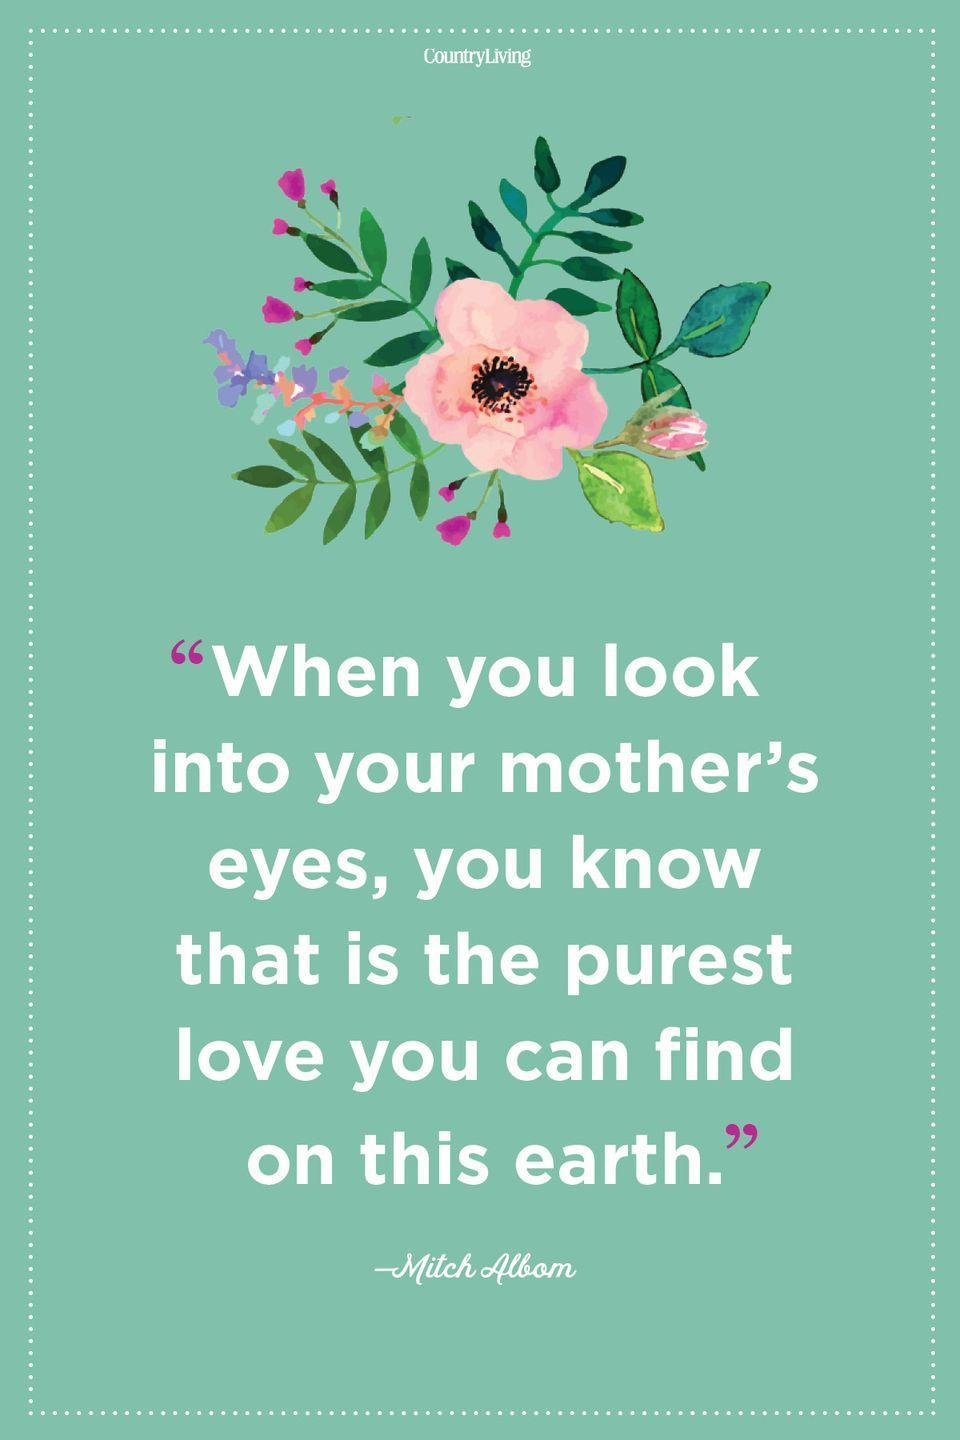 "<p>""When you look into your mother's eyes, you know that is the purest love you can find on this earth."" </p>"